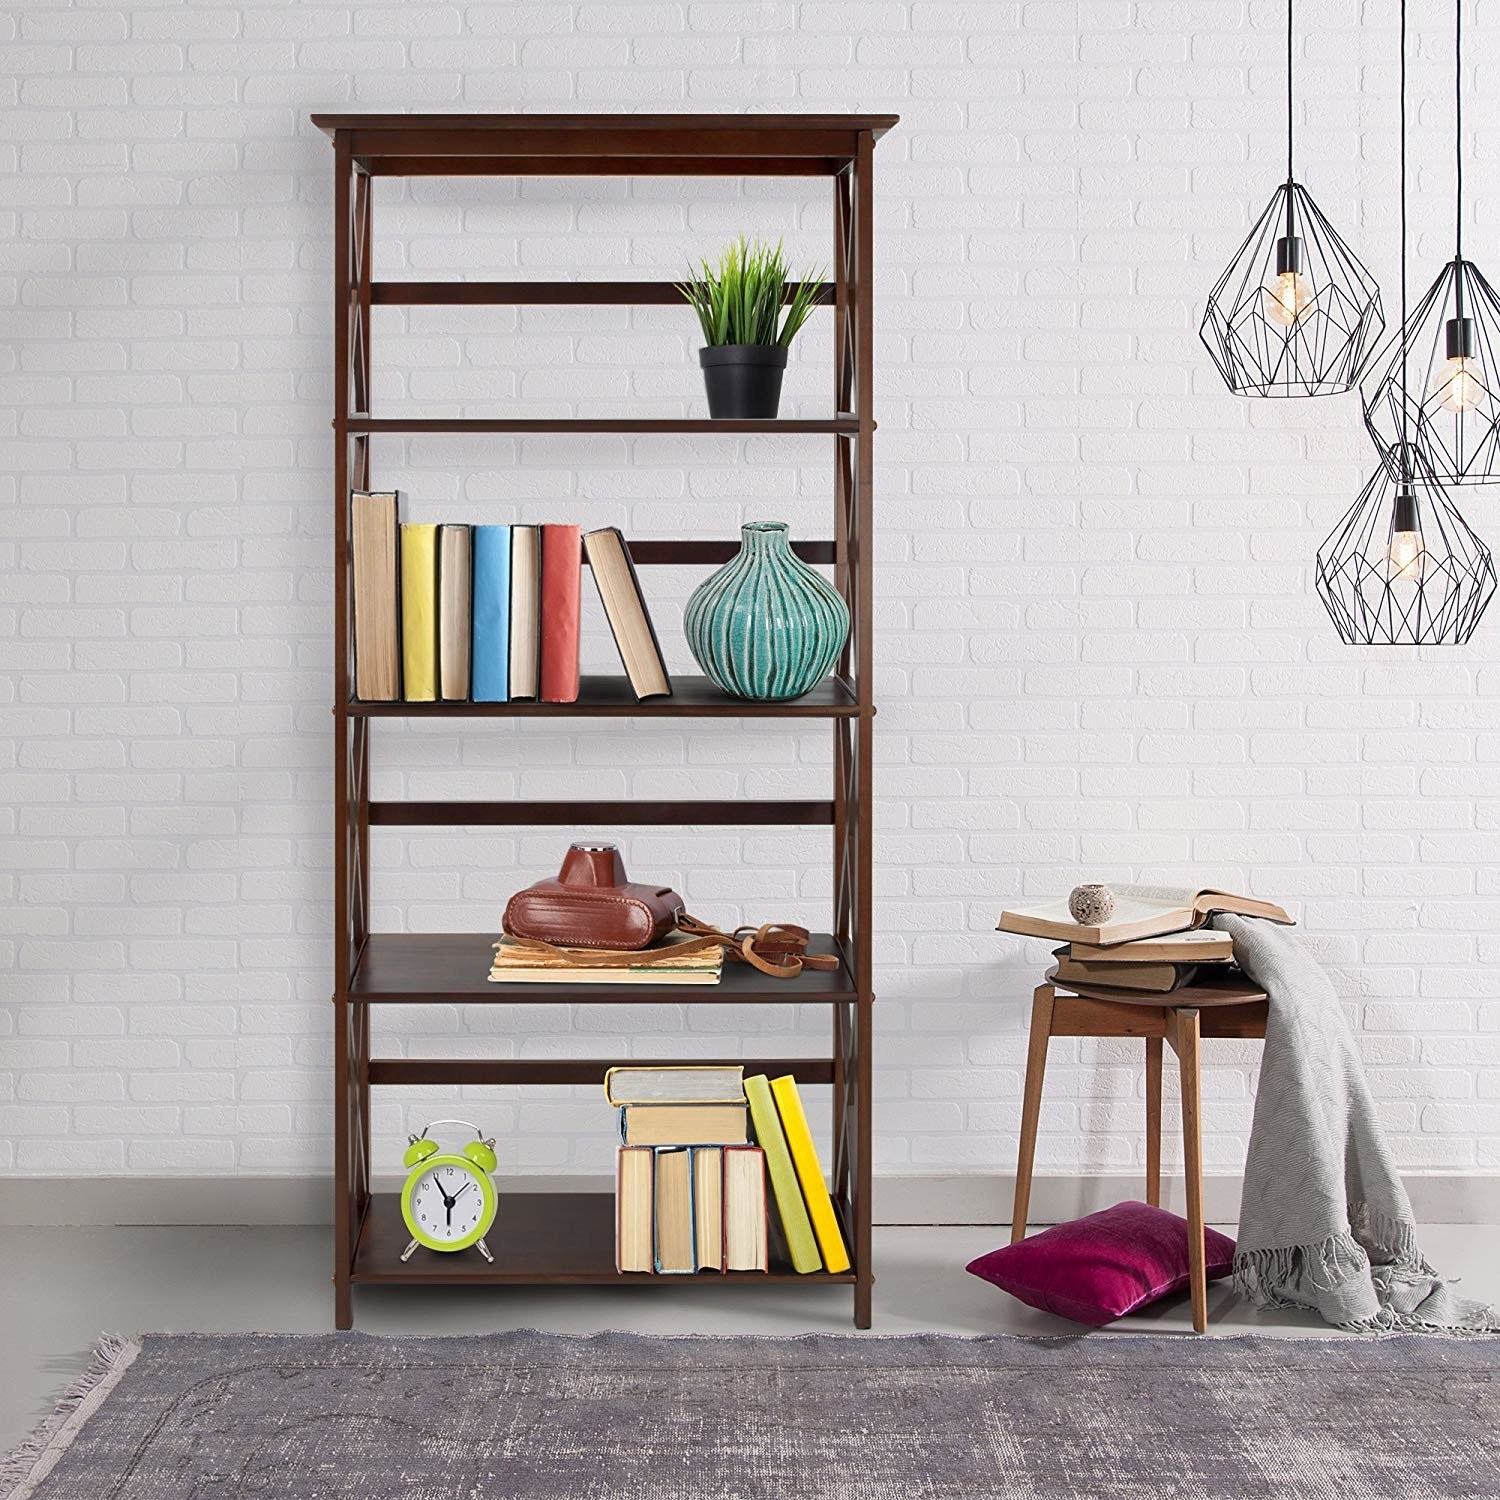 the four-tier bookcase